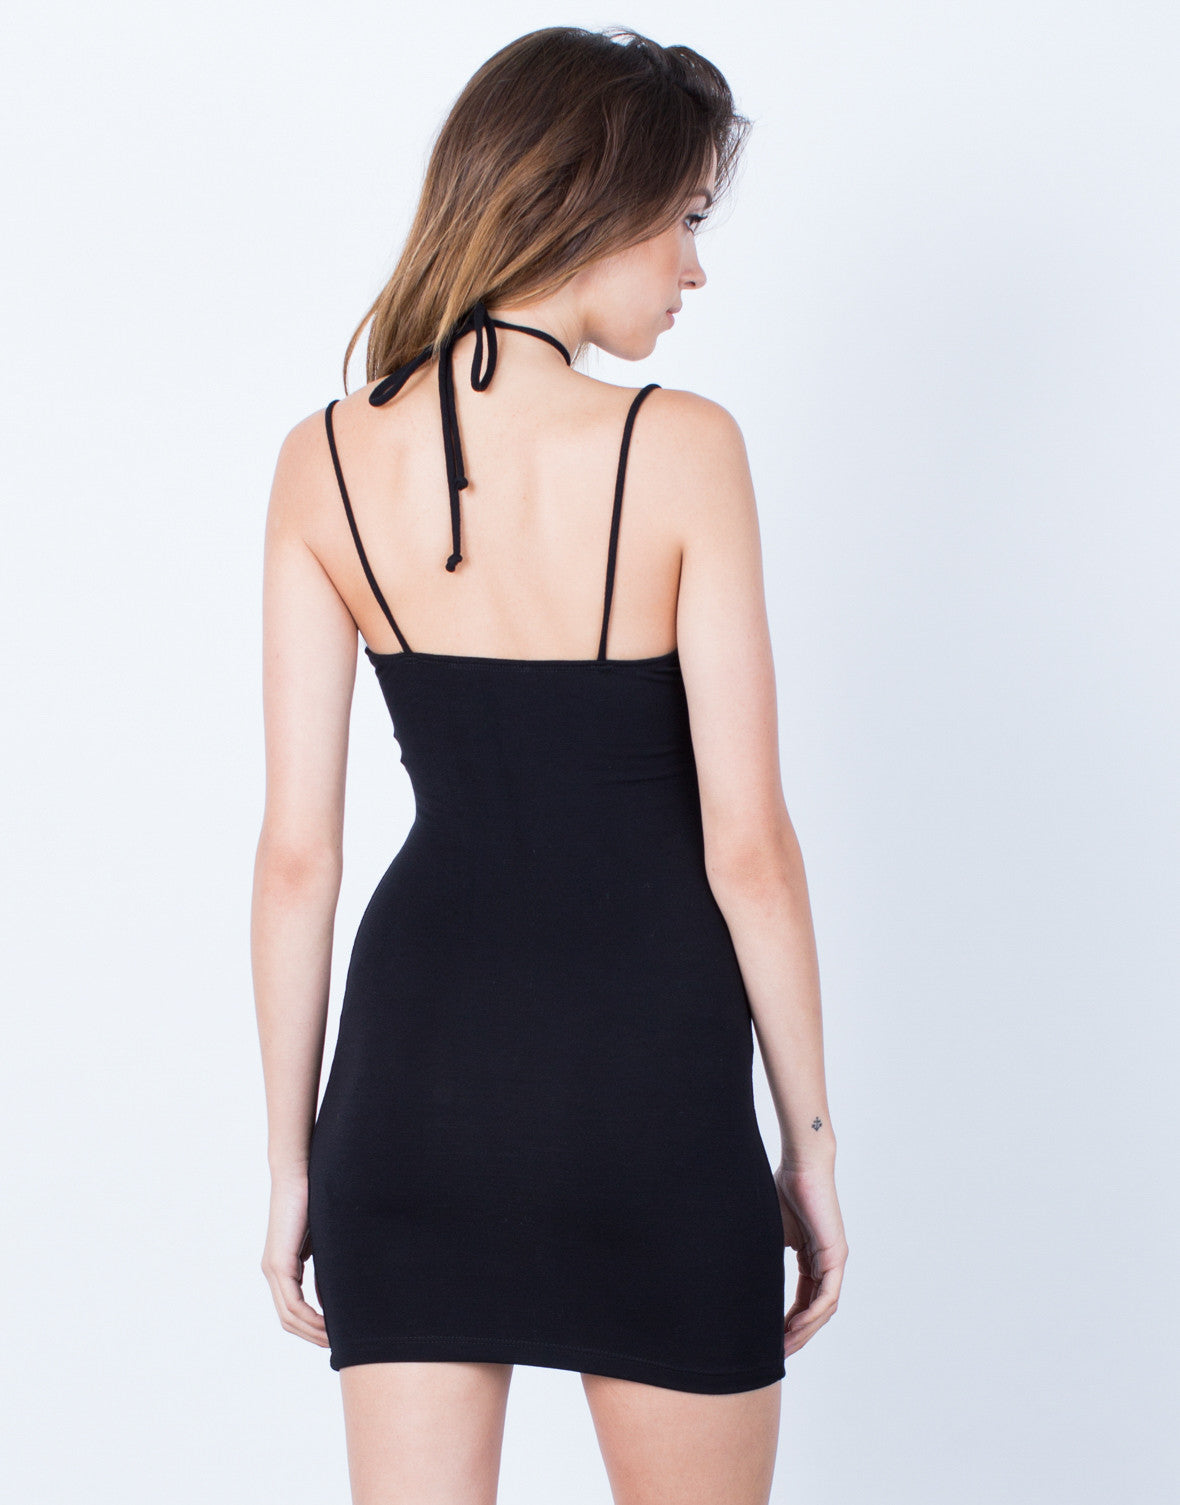 Back View of Cami Choker Dress